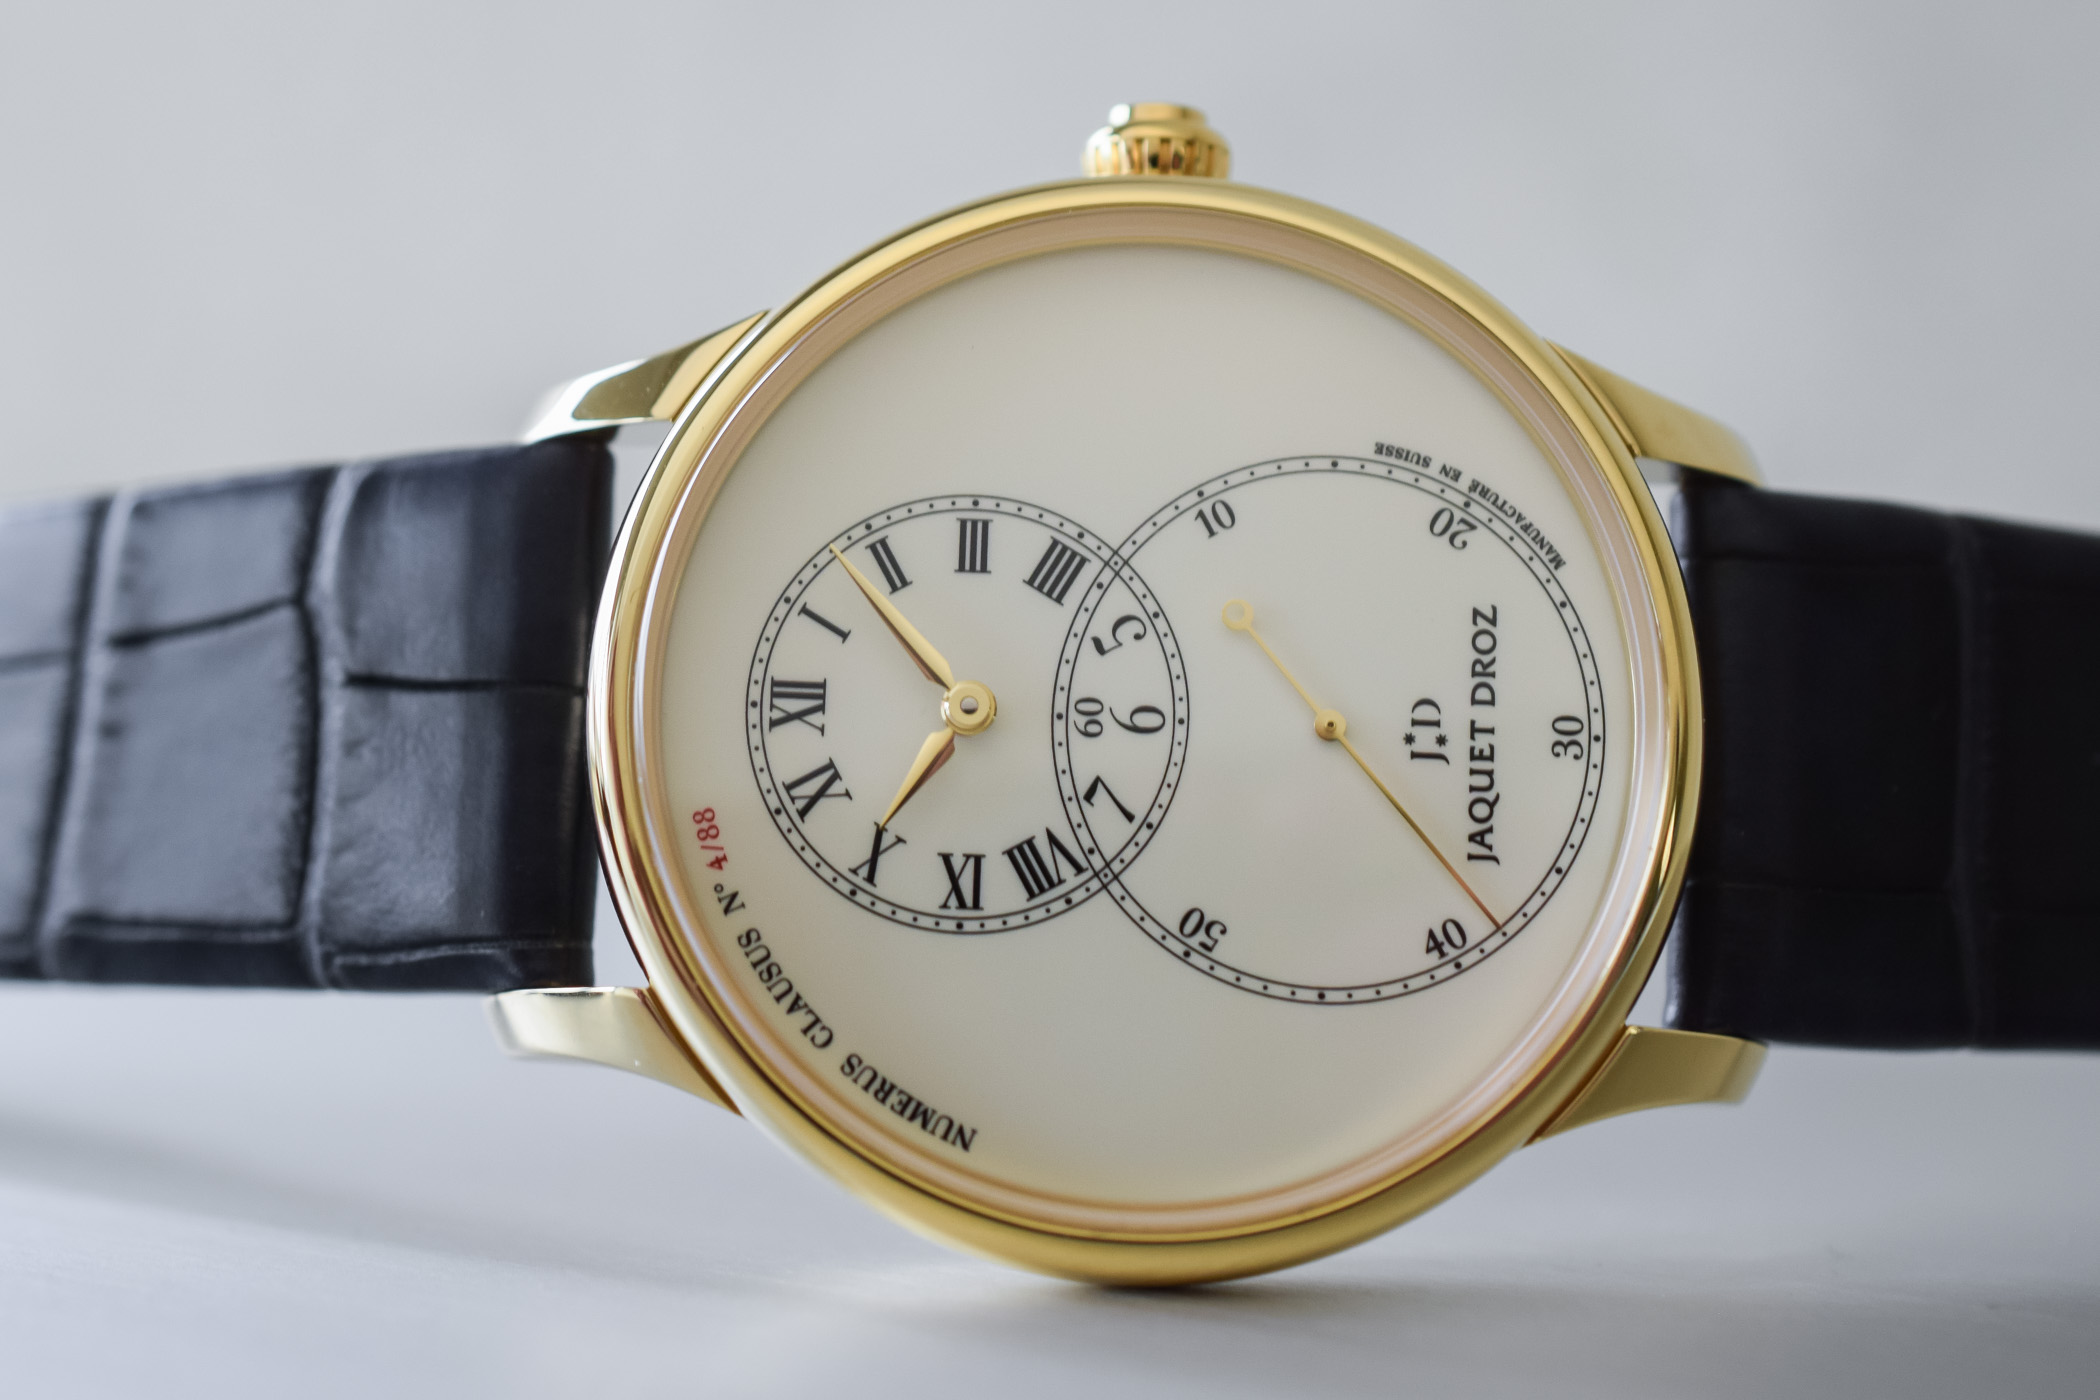 Jaquet Droz Grande Second Tribute Yellow Gold - Baselworld 2018